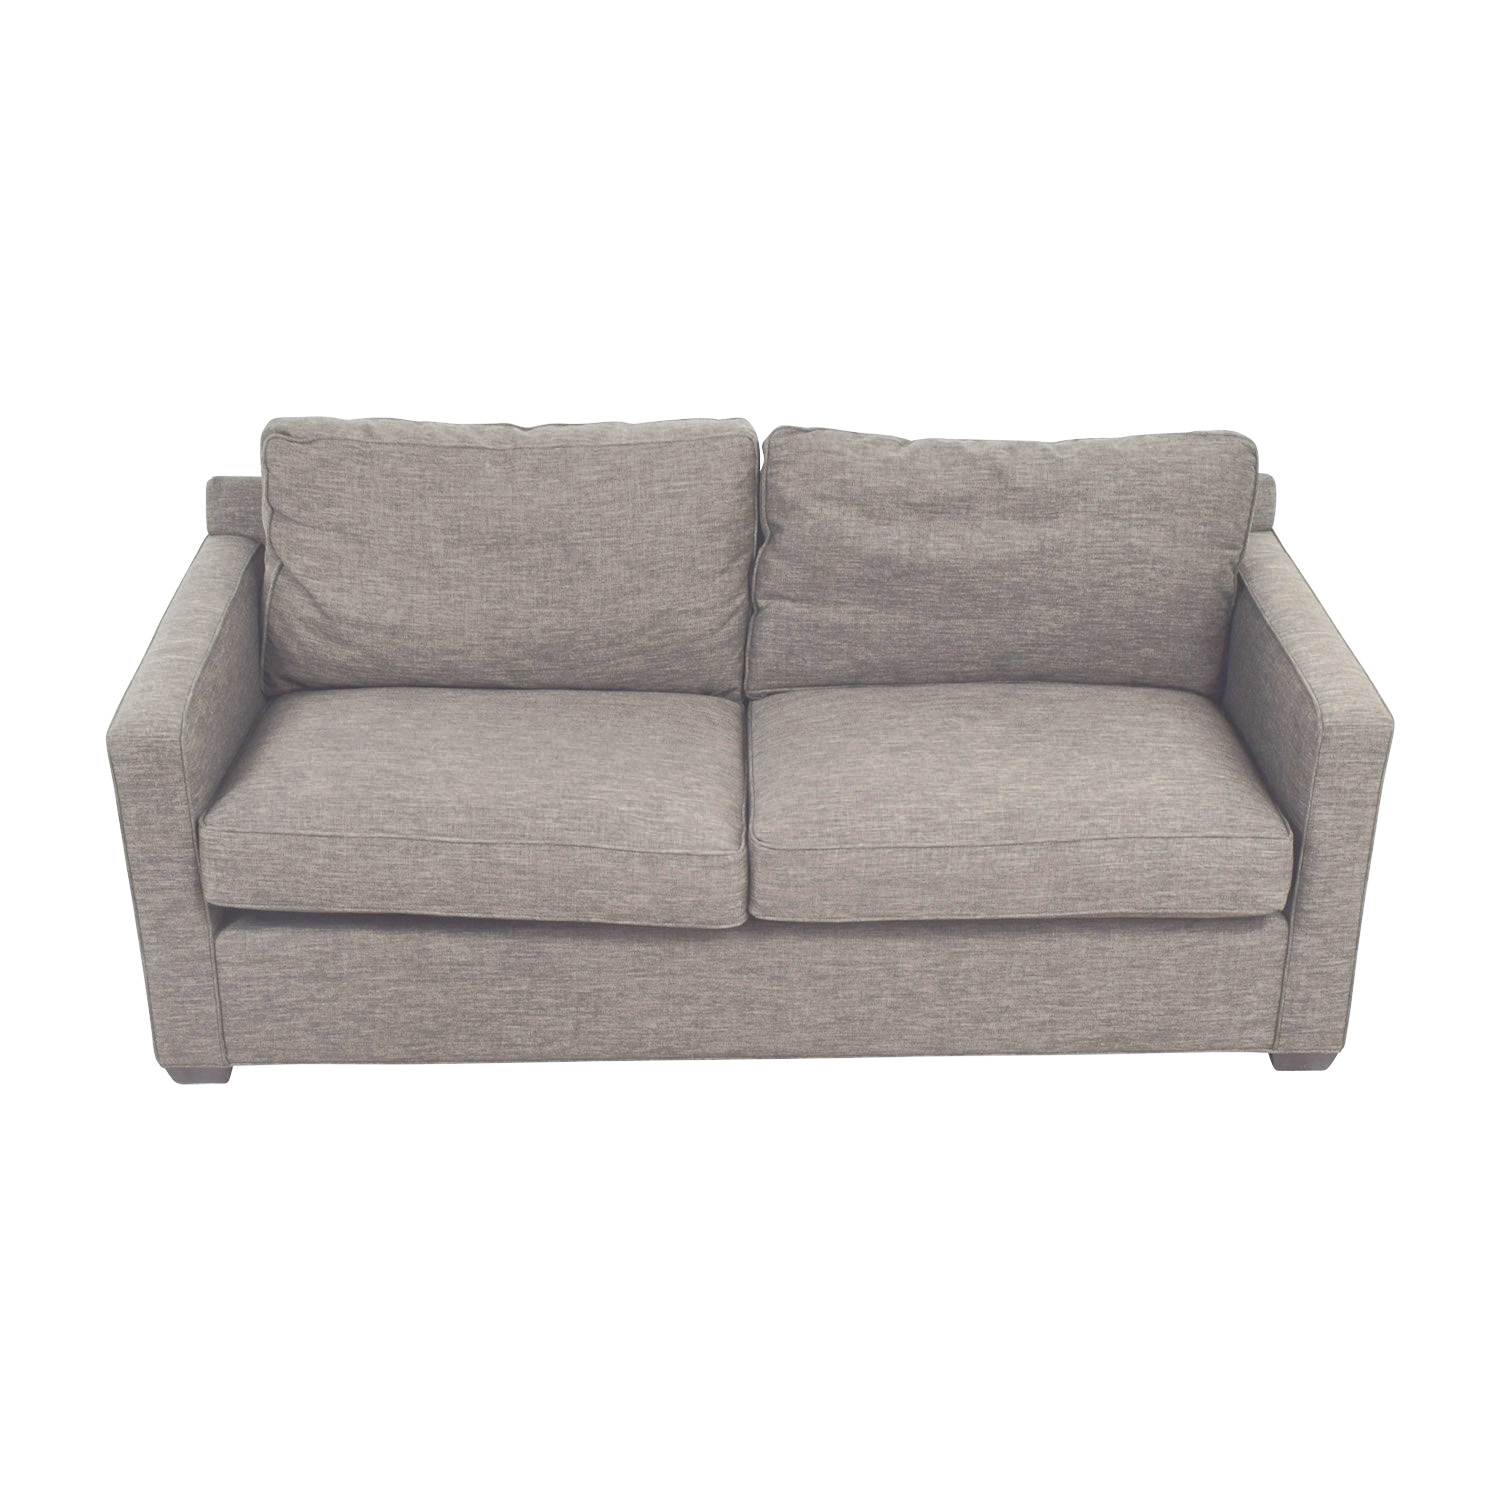 Crate & Barrel Davis Grey Two-Cushion Sofa / Classic Sofas